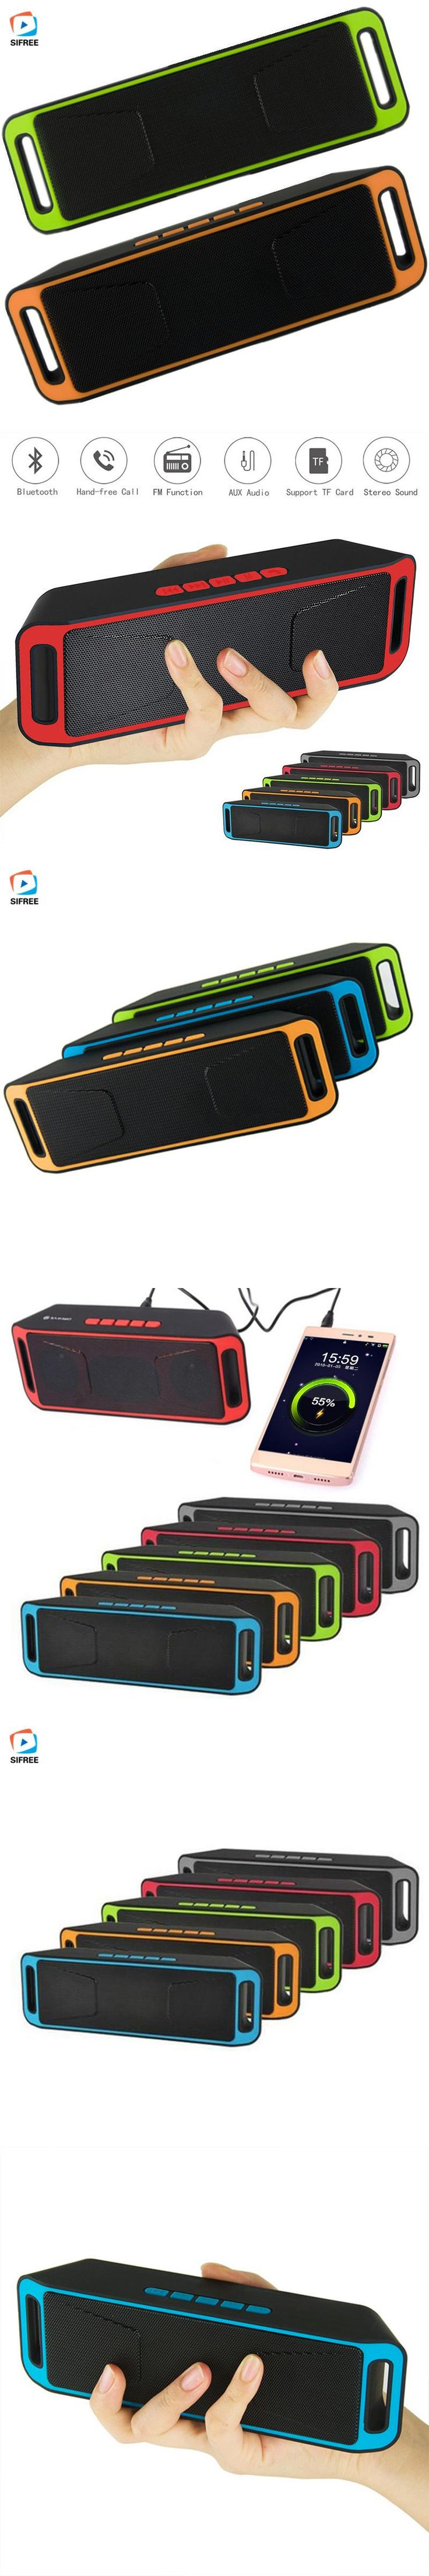 New Portable Wireless Bluetooth Speaker Stereo Support TF USB AUX Built-in Mic Sound Box Music Surround speaker 5 colors